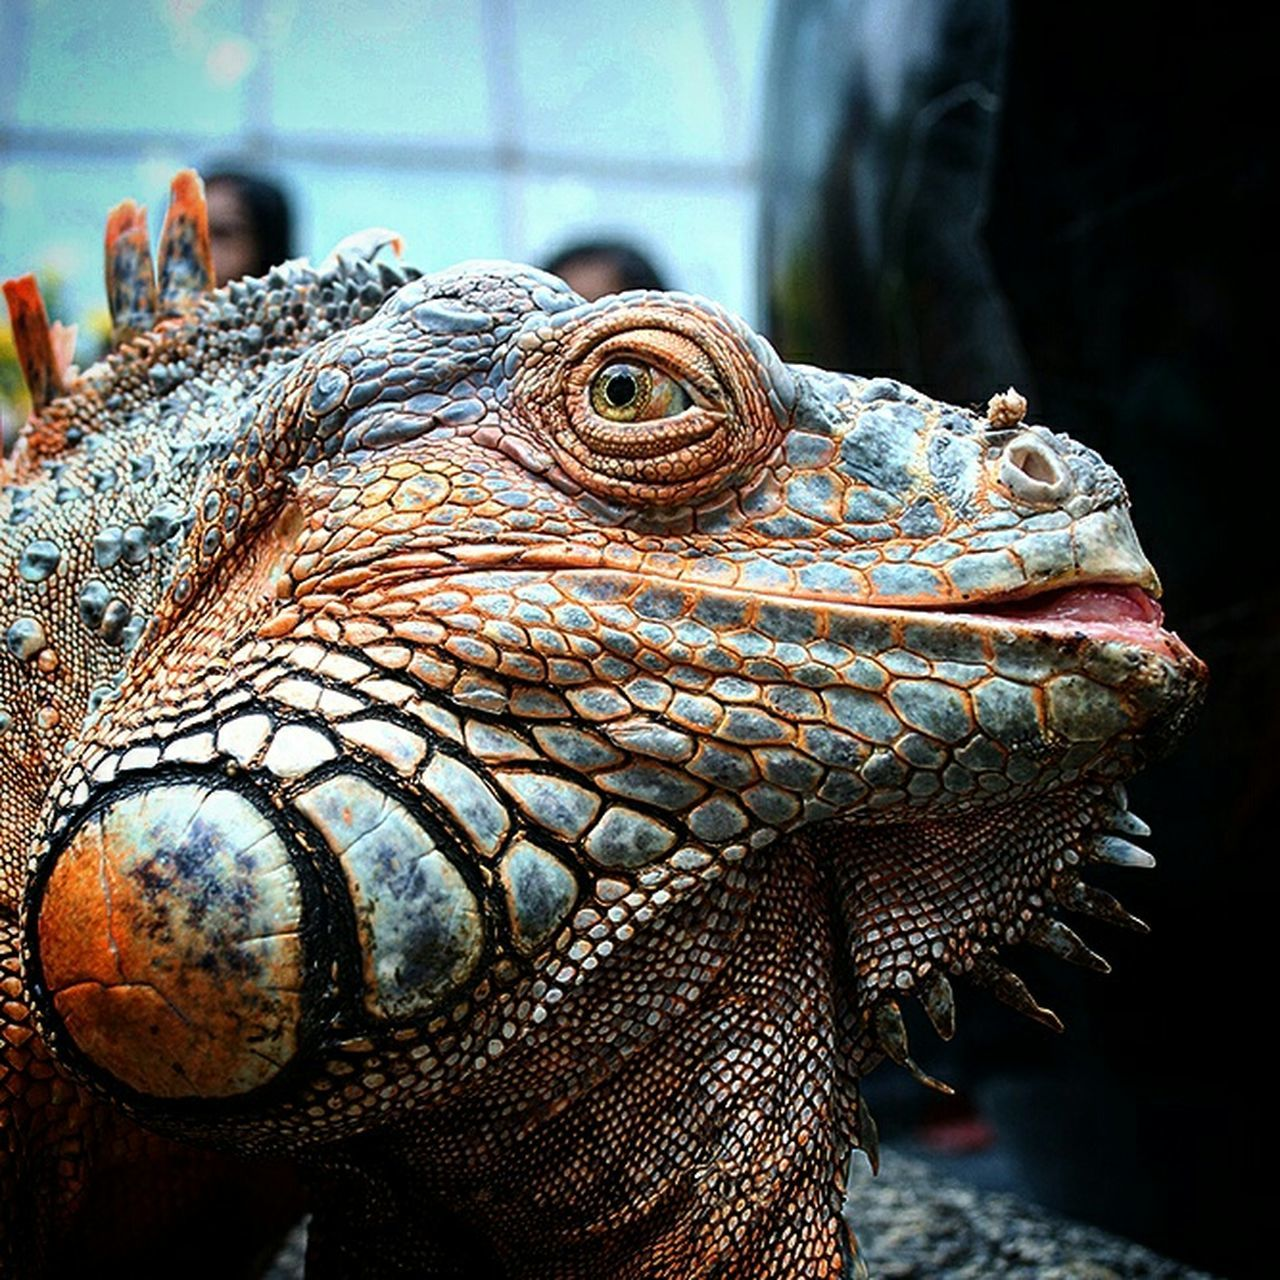 reptile, one animal, animal wildlife, animals in the wild, lizard, animal themes, close-up, iguana, bearded dragon, no people, day, focus on foreground, animal scale, outdoors, nature, dragon